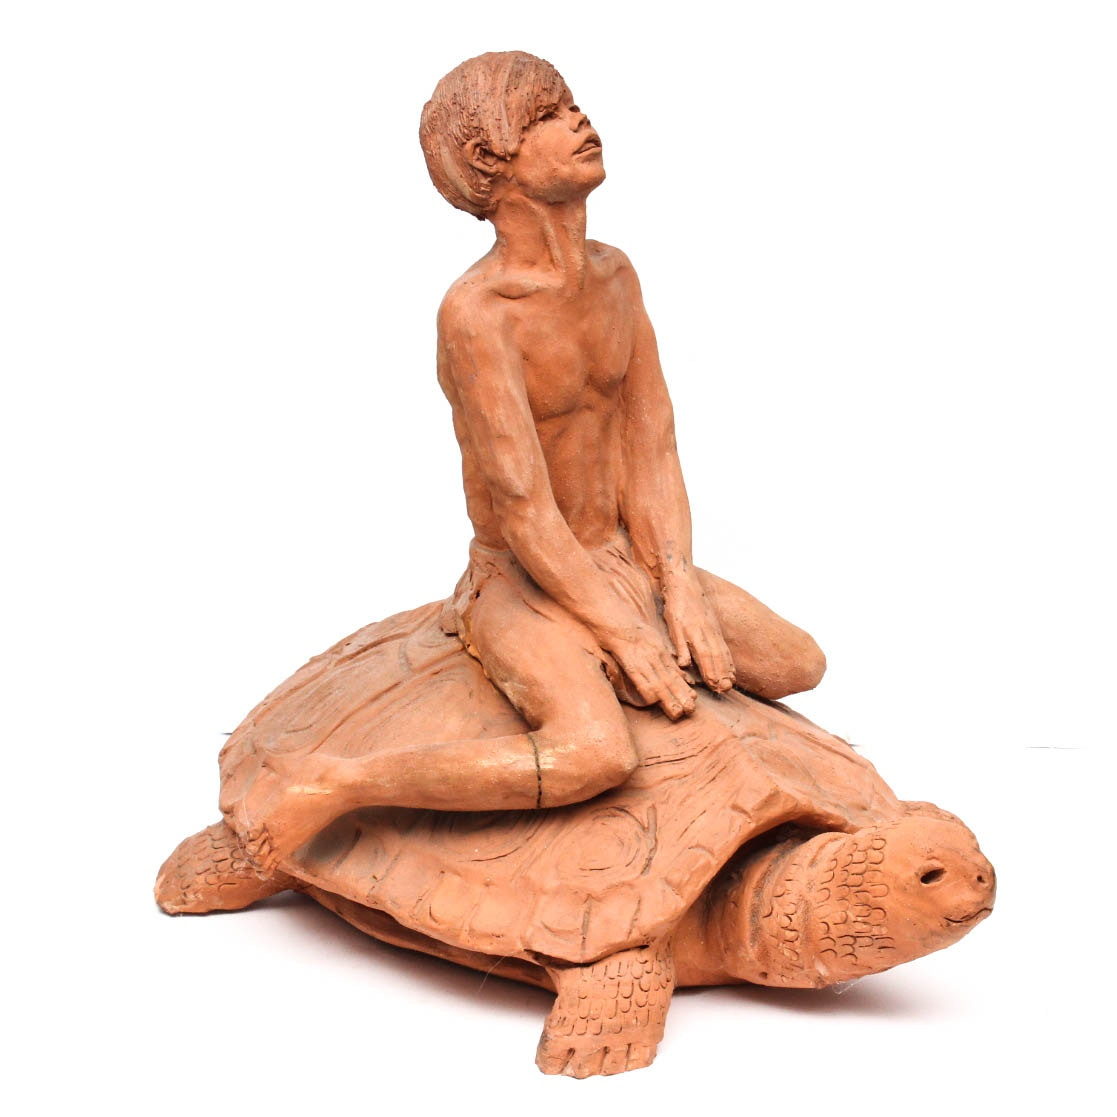 Original Commissioned Ann Entis Terracotta Sculpture